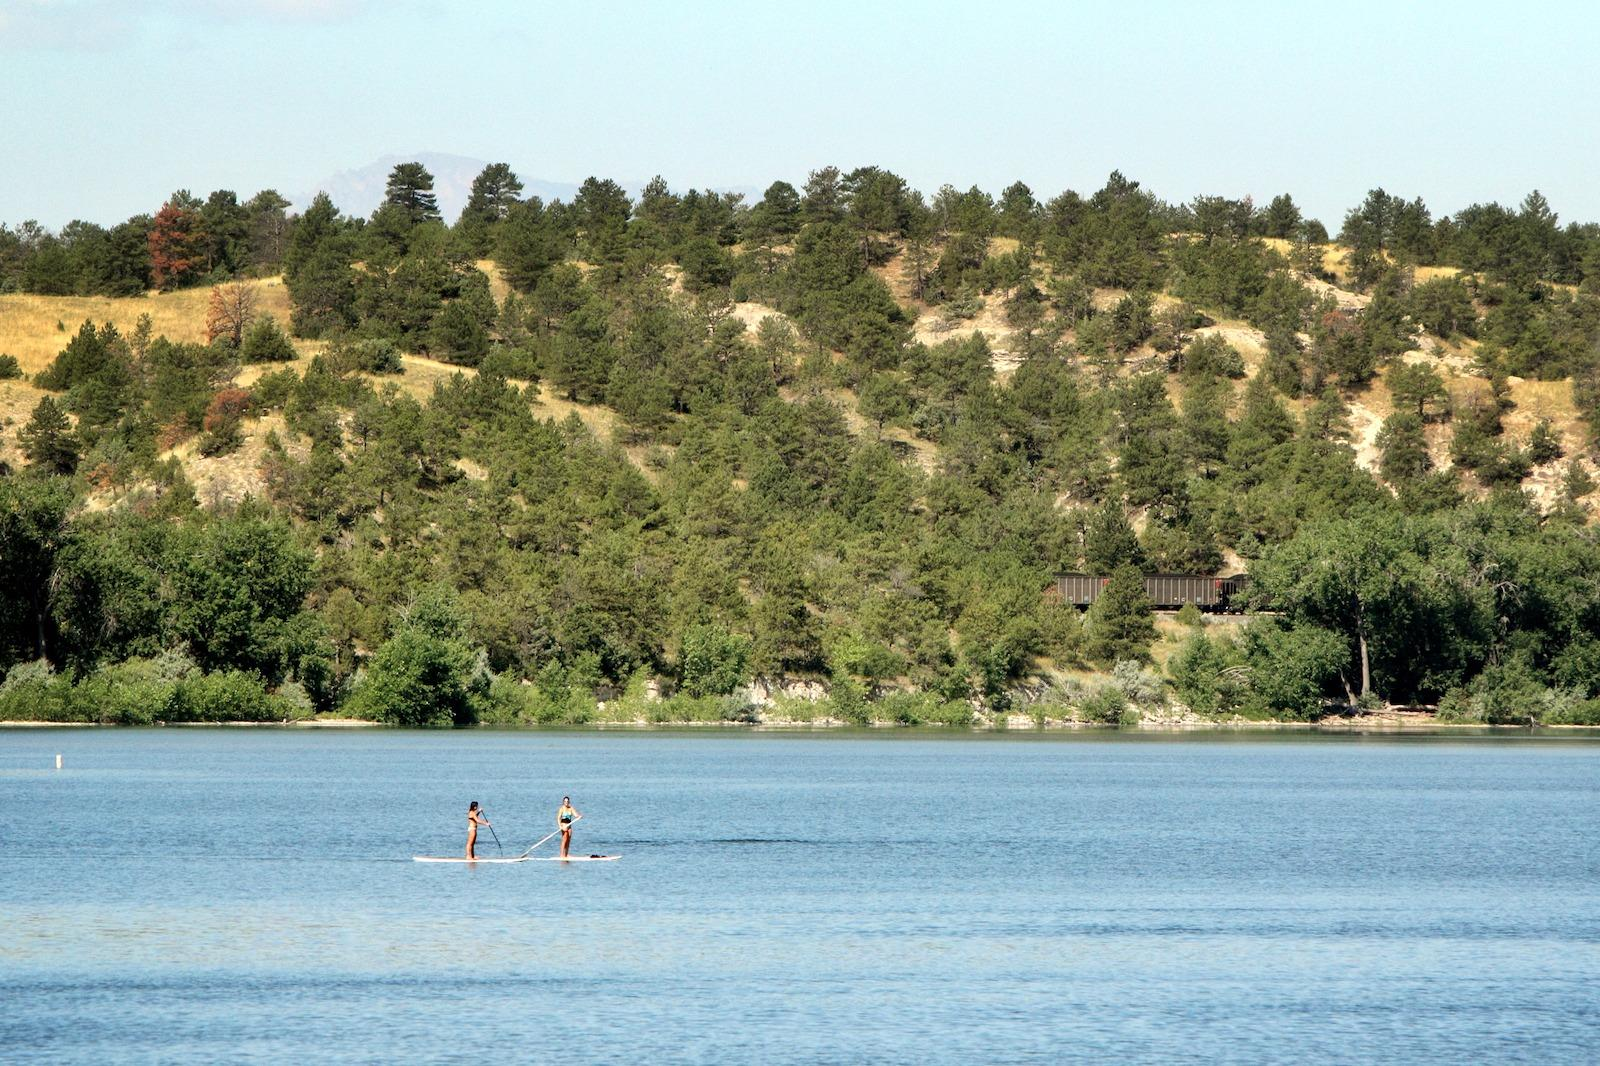 Paddle boarding on family vacation in Platte County, Wyoming